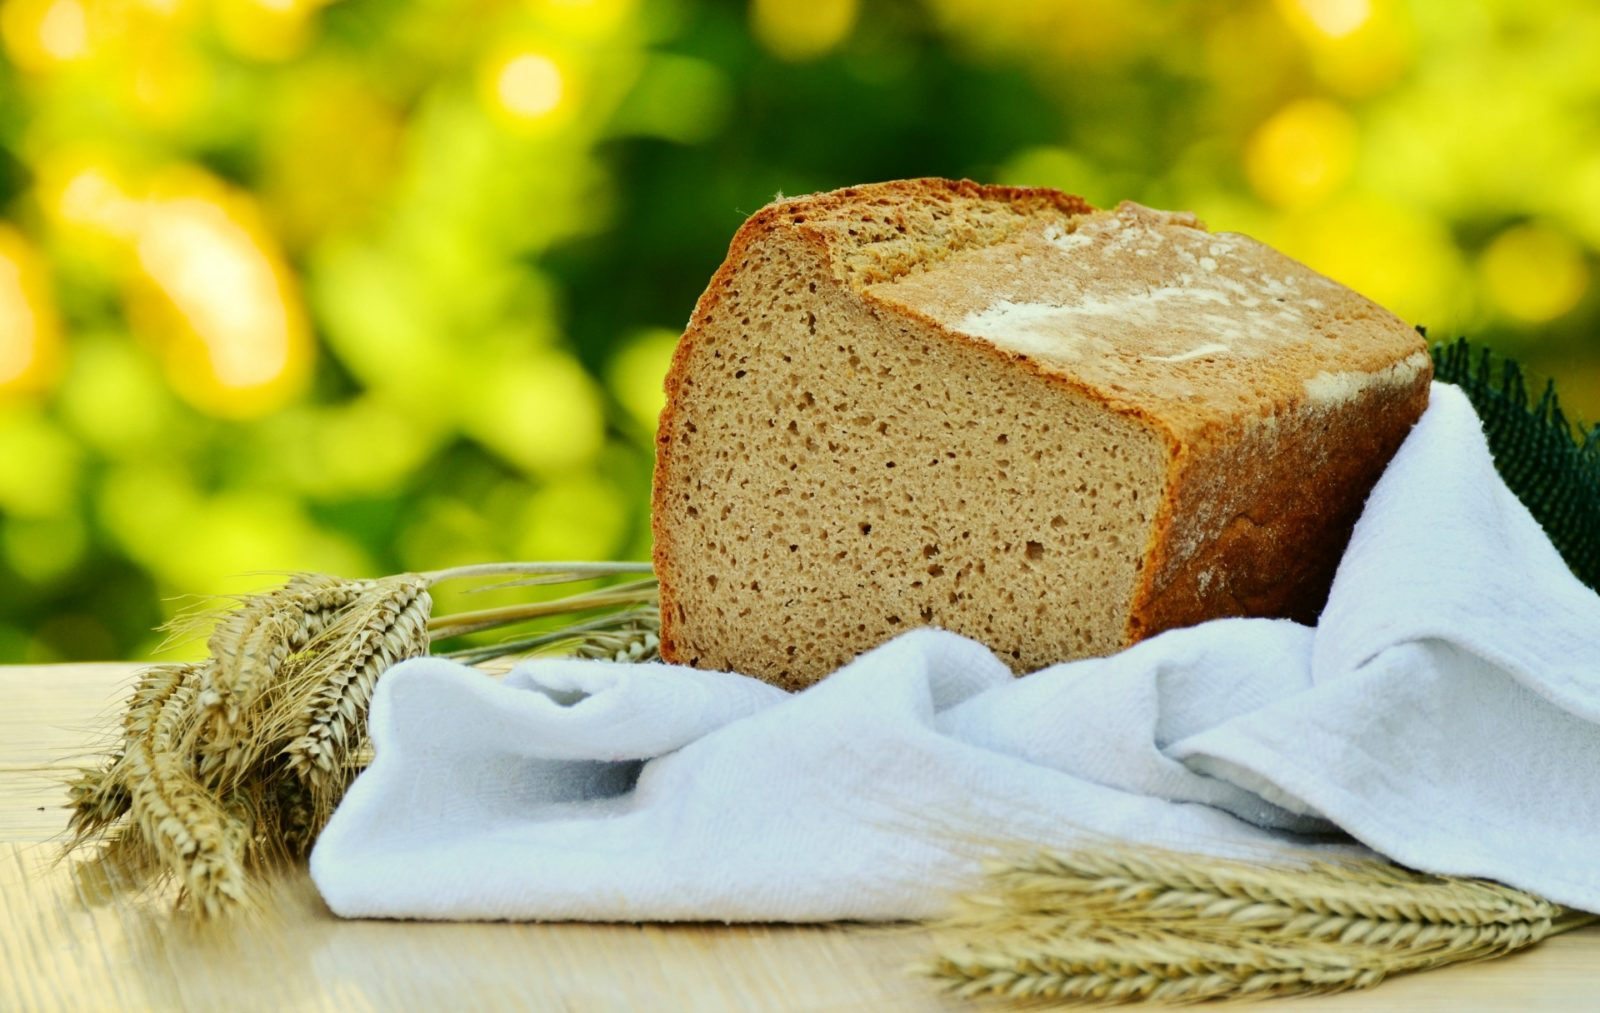 Switching to whole wheat bread is one of the easiest way to lose weight and up your fibre intake. Source: Pexels